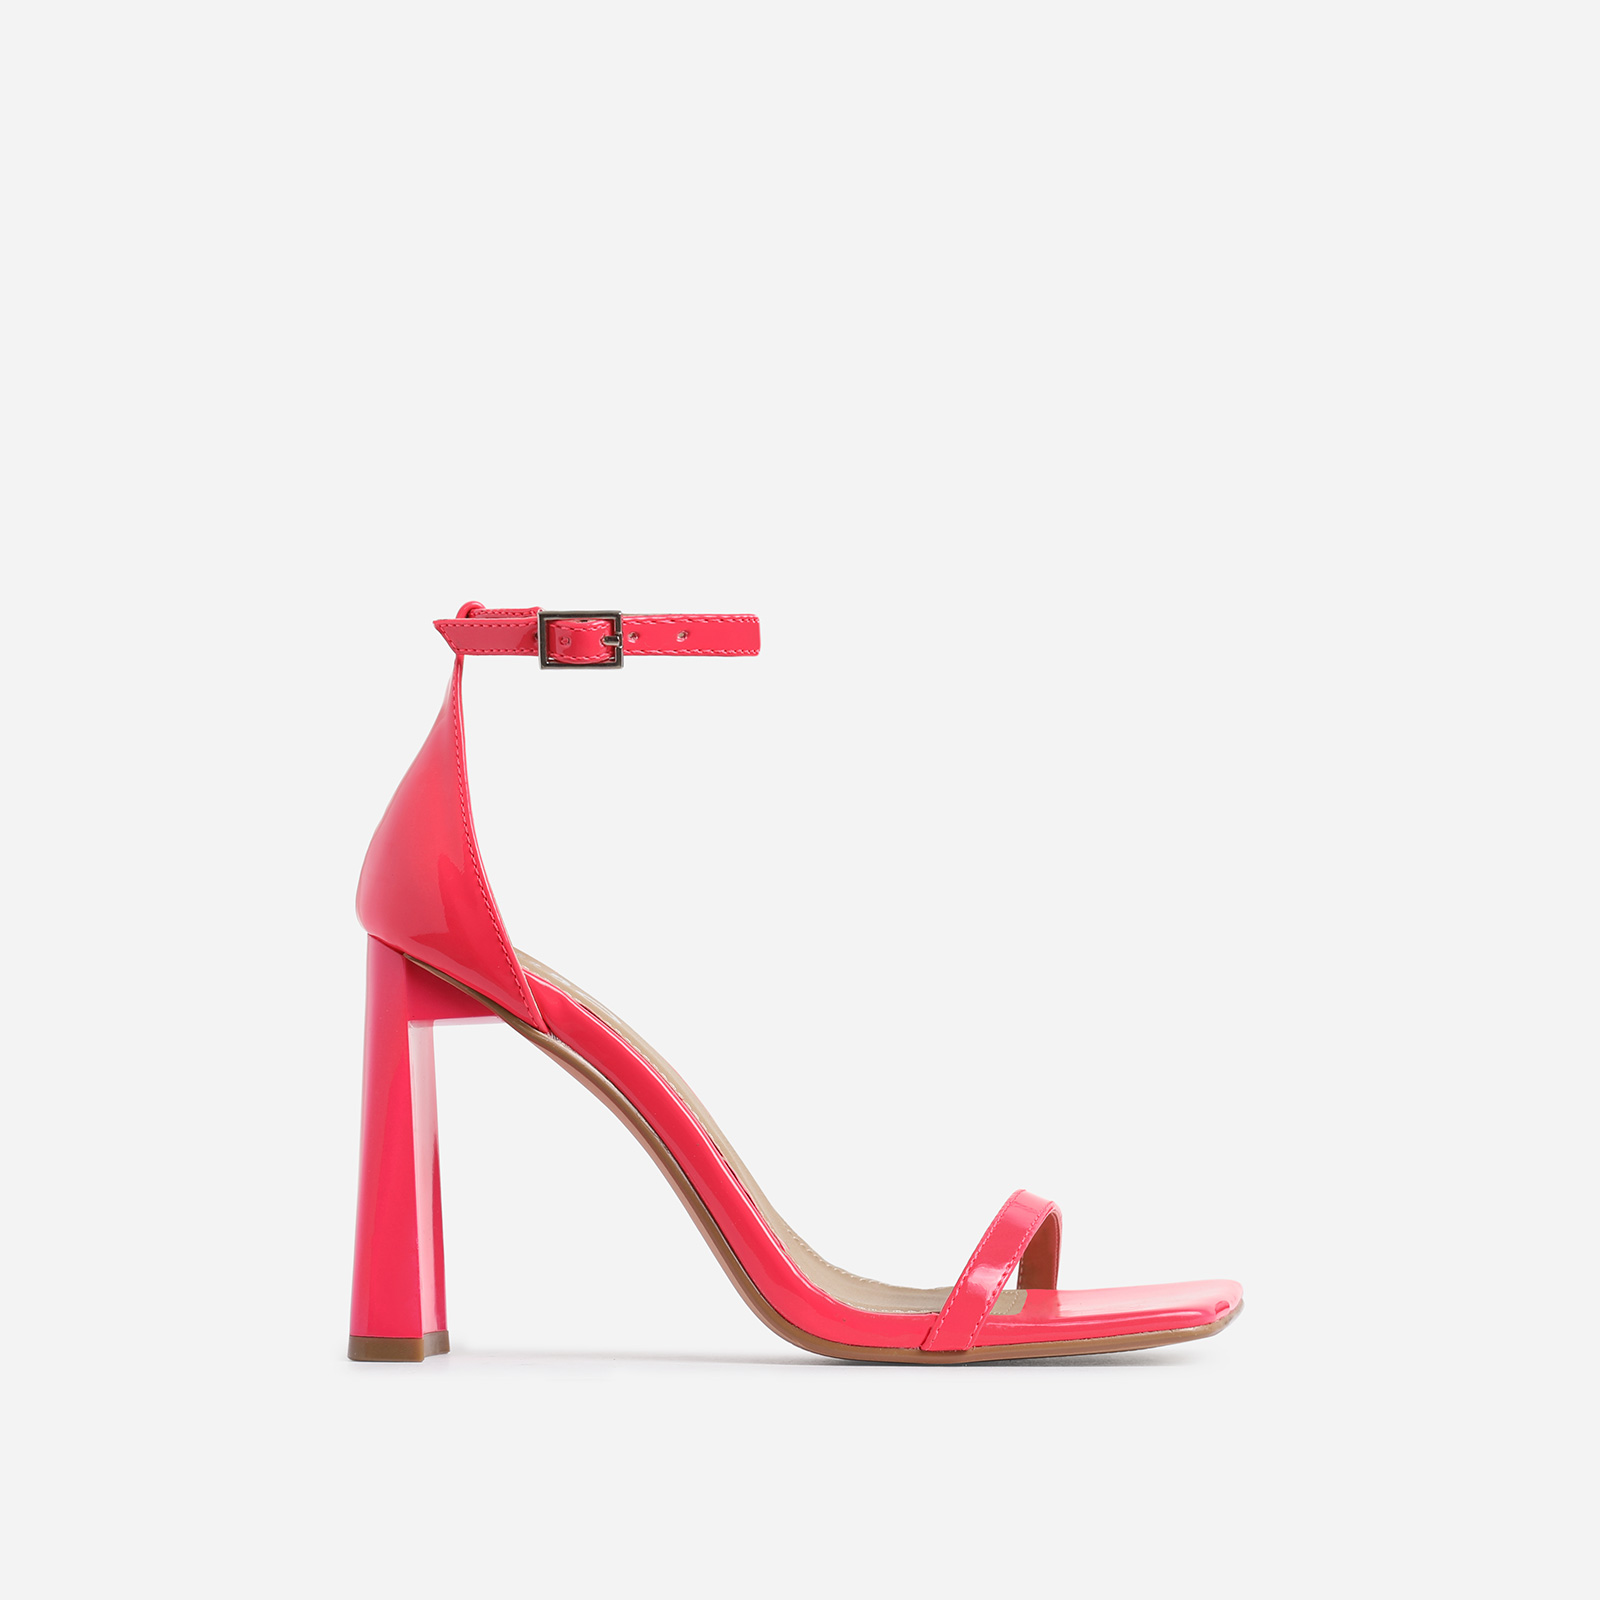 Ace Square Toe Flared Heel In Pink Patent